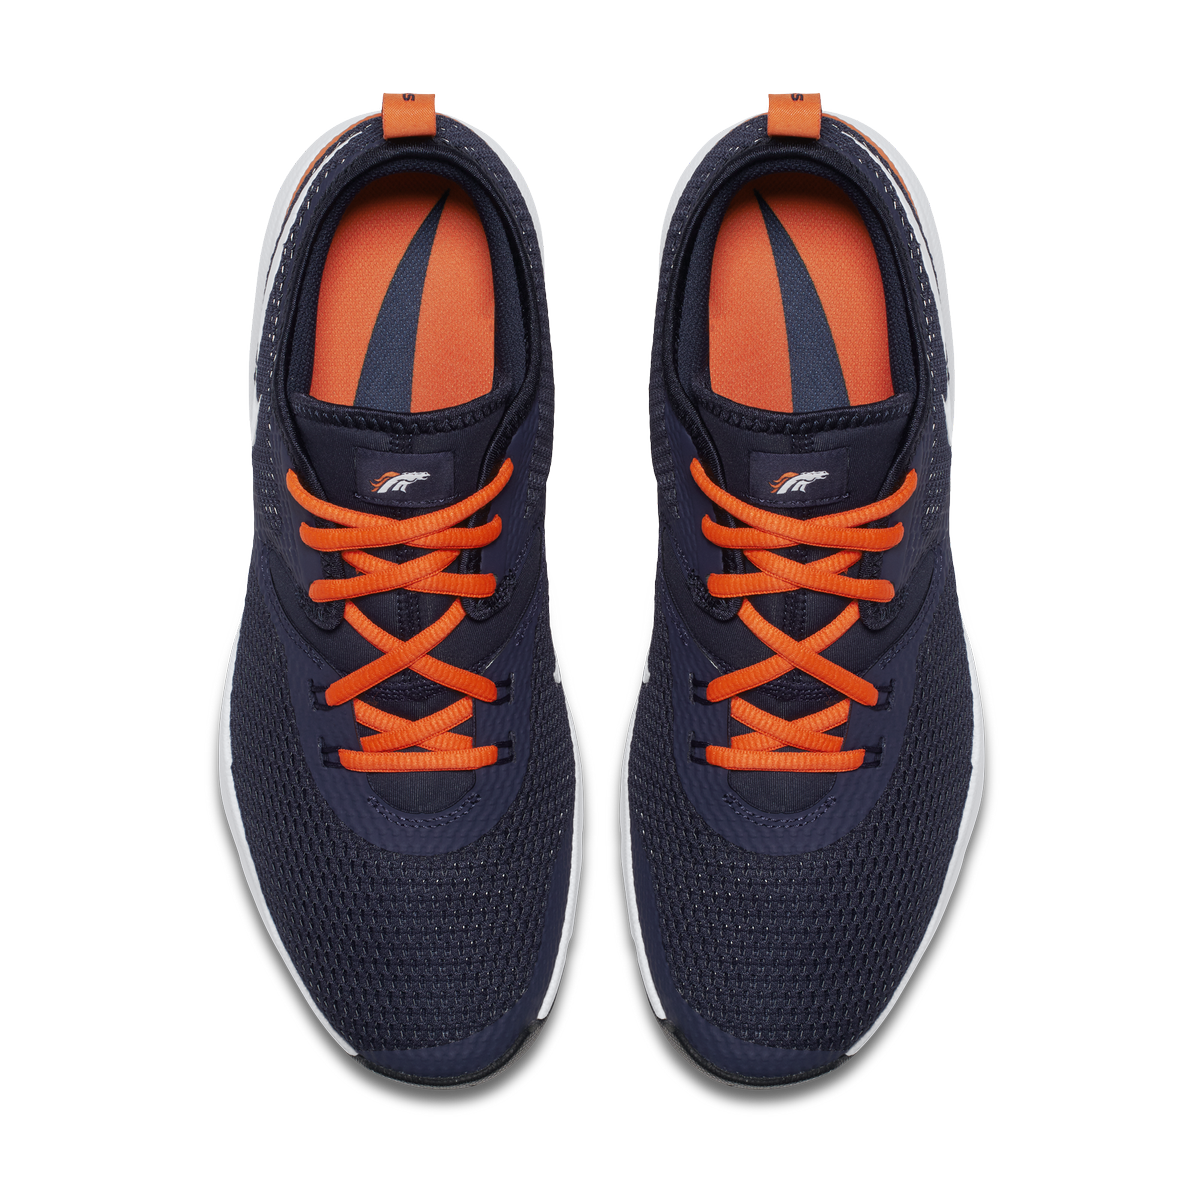 ad312f7907cc Nike releases new NFL-themed Air Max Typha 2 shoe collection ...